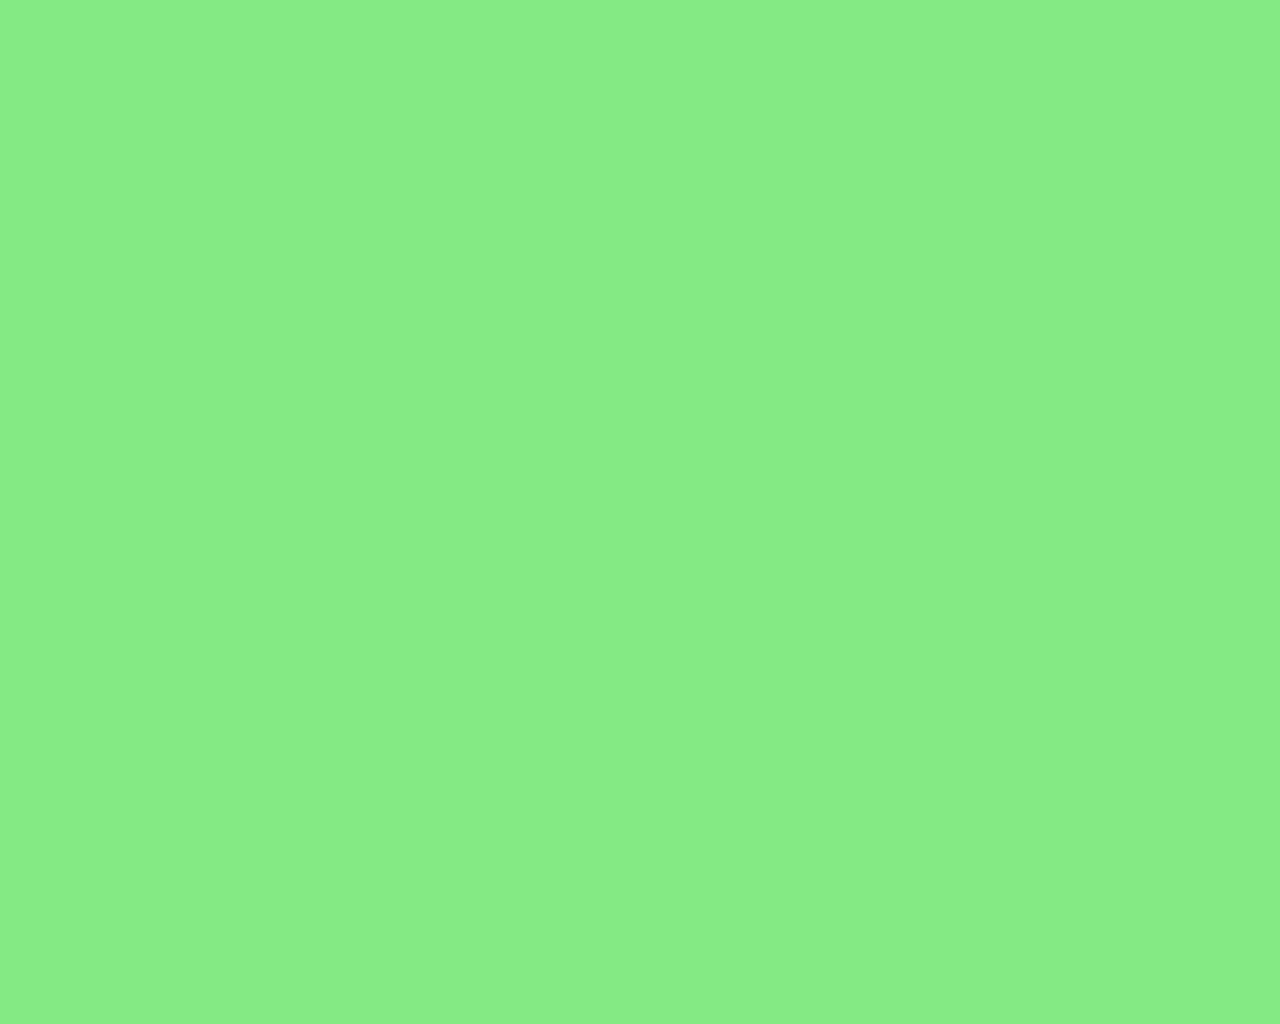 Plain Mint Green Background Viewing Gallery Solid Color Backgrounds Green Wallpaper Hex Colors